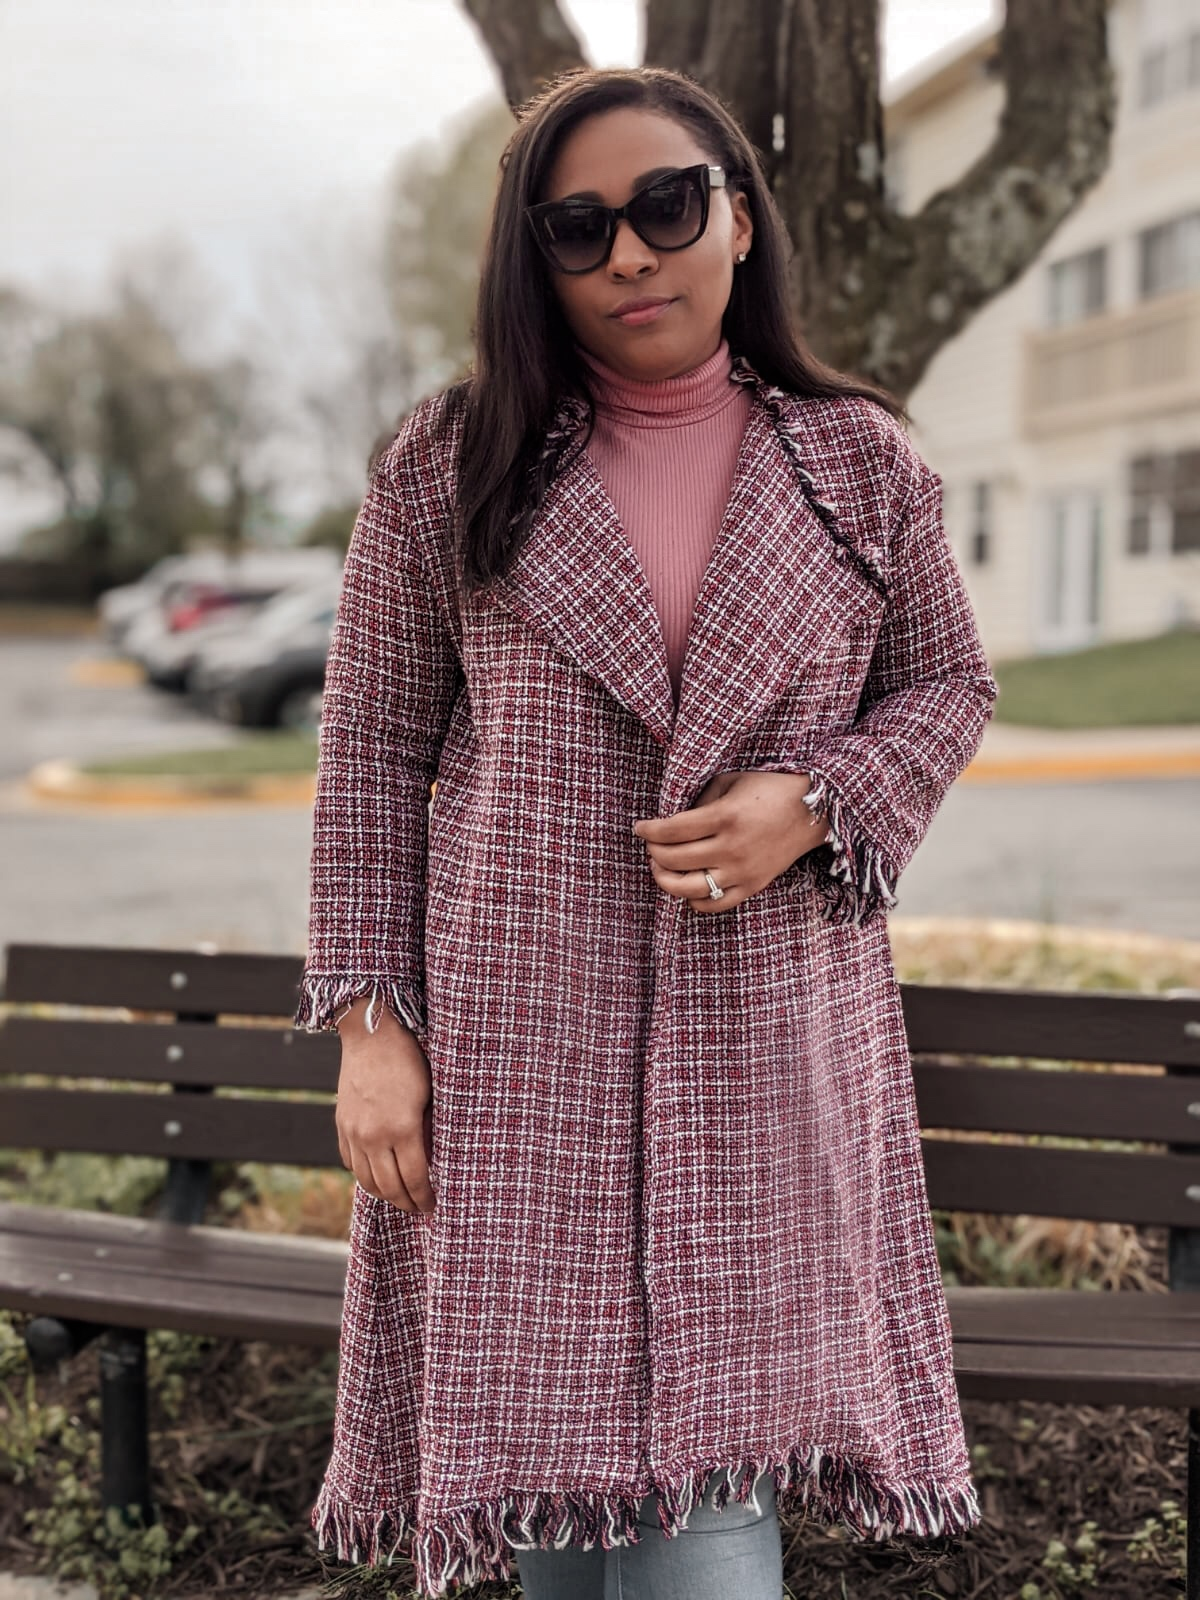 shein, shein reviews, quarantine, pattyskloset, stylish mom outfits, quarantine ootd, spring jumpsuits, outfits for spring